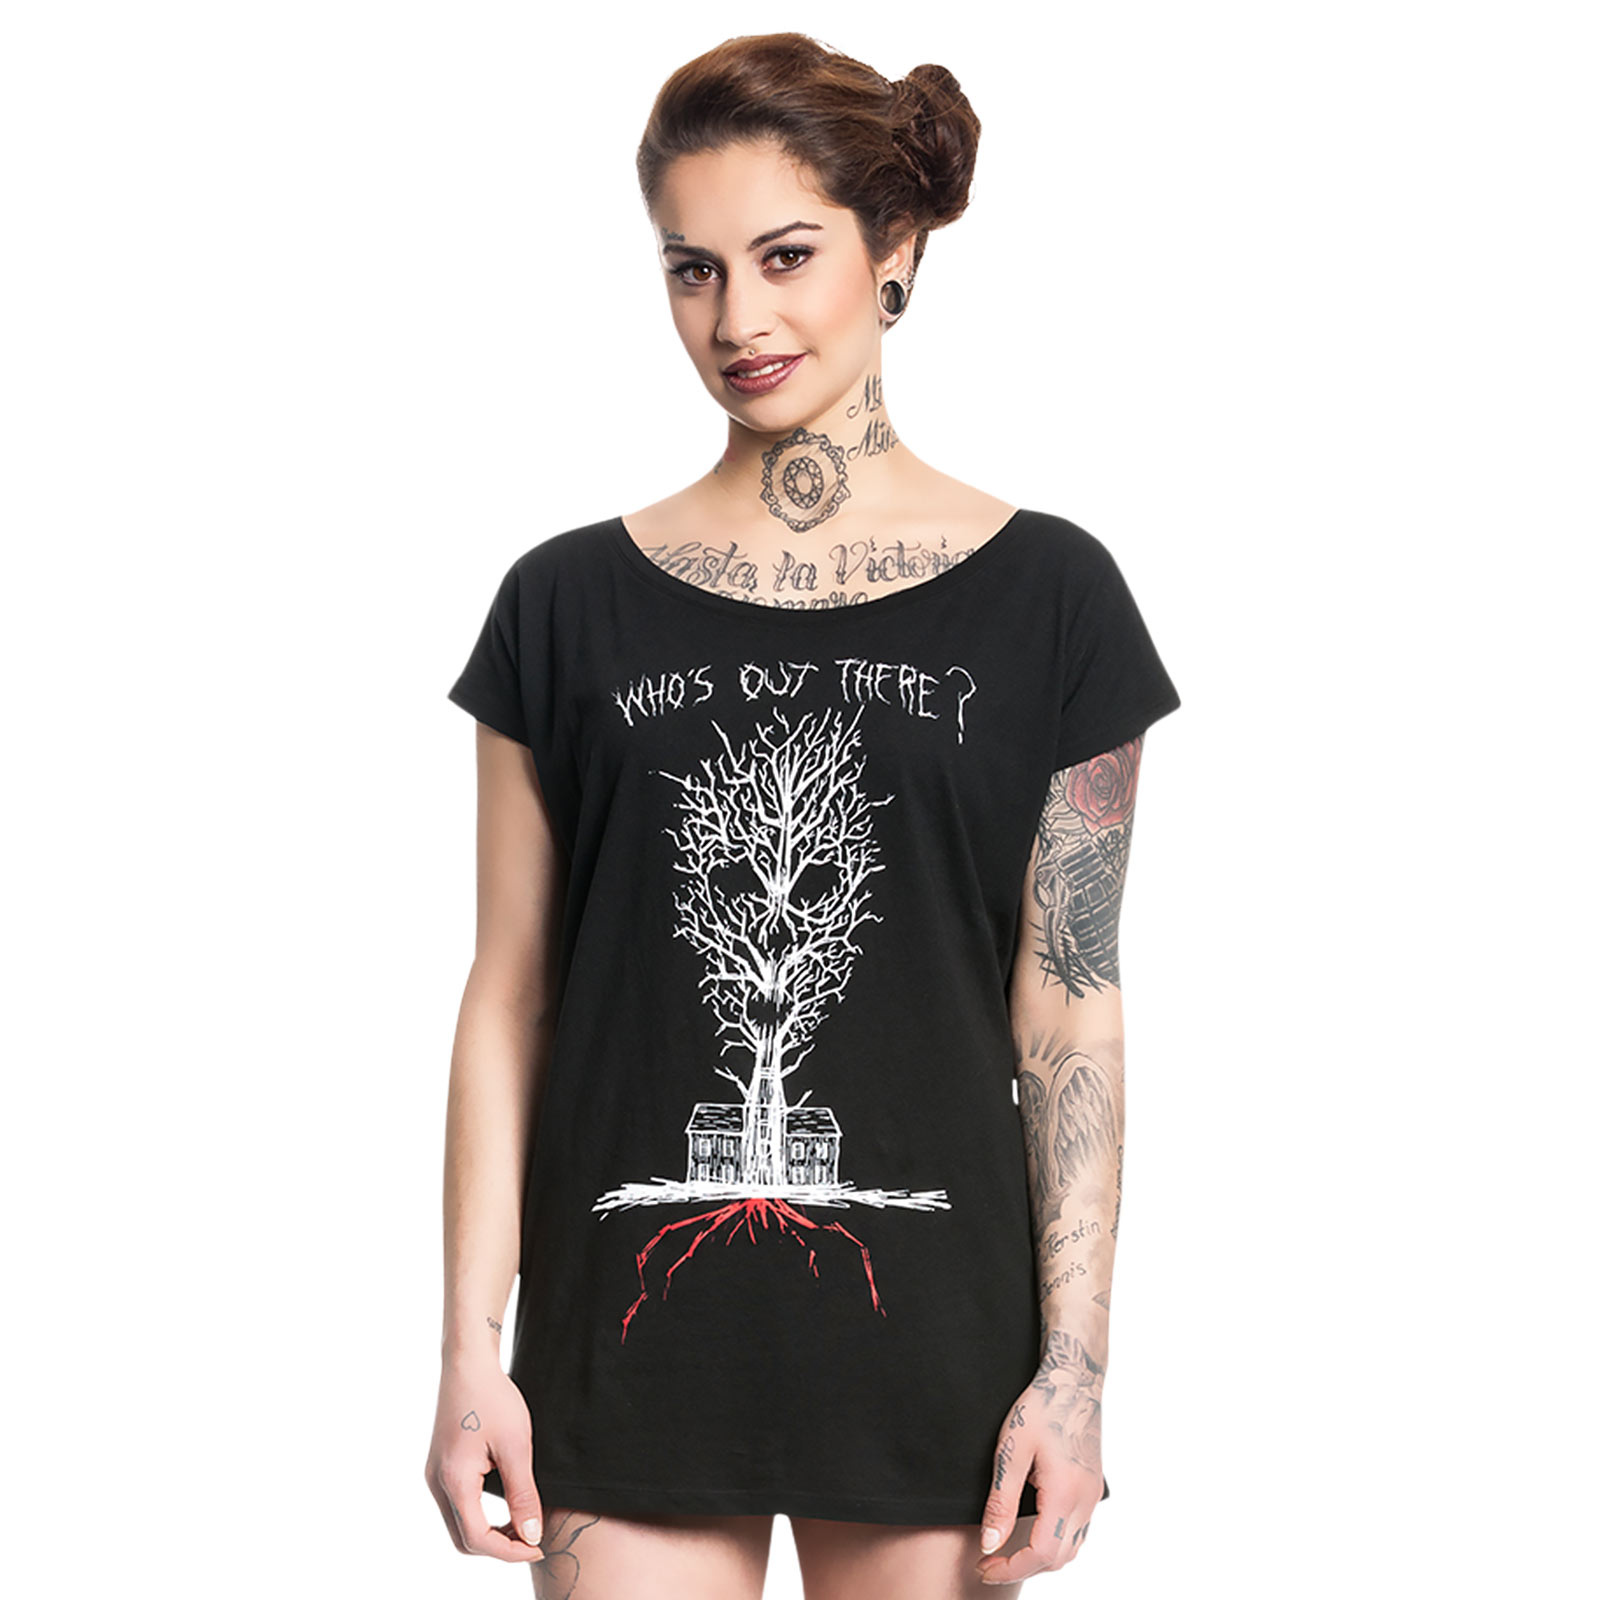 American Horror Story - Who is Out There Girlie Shirt Loose Fit